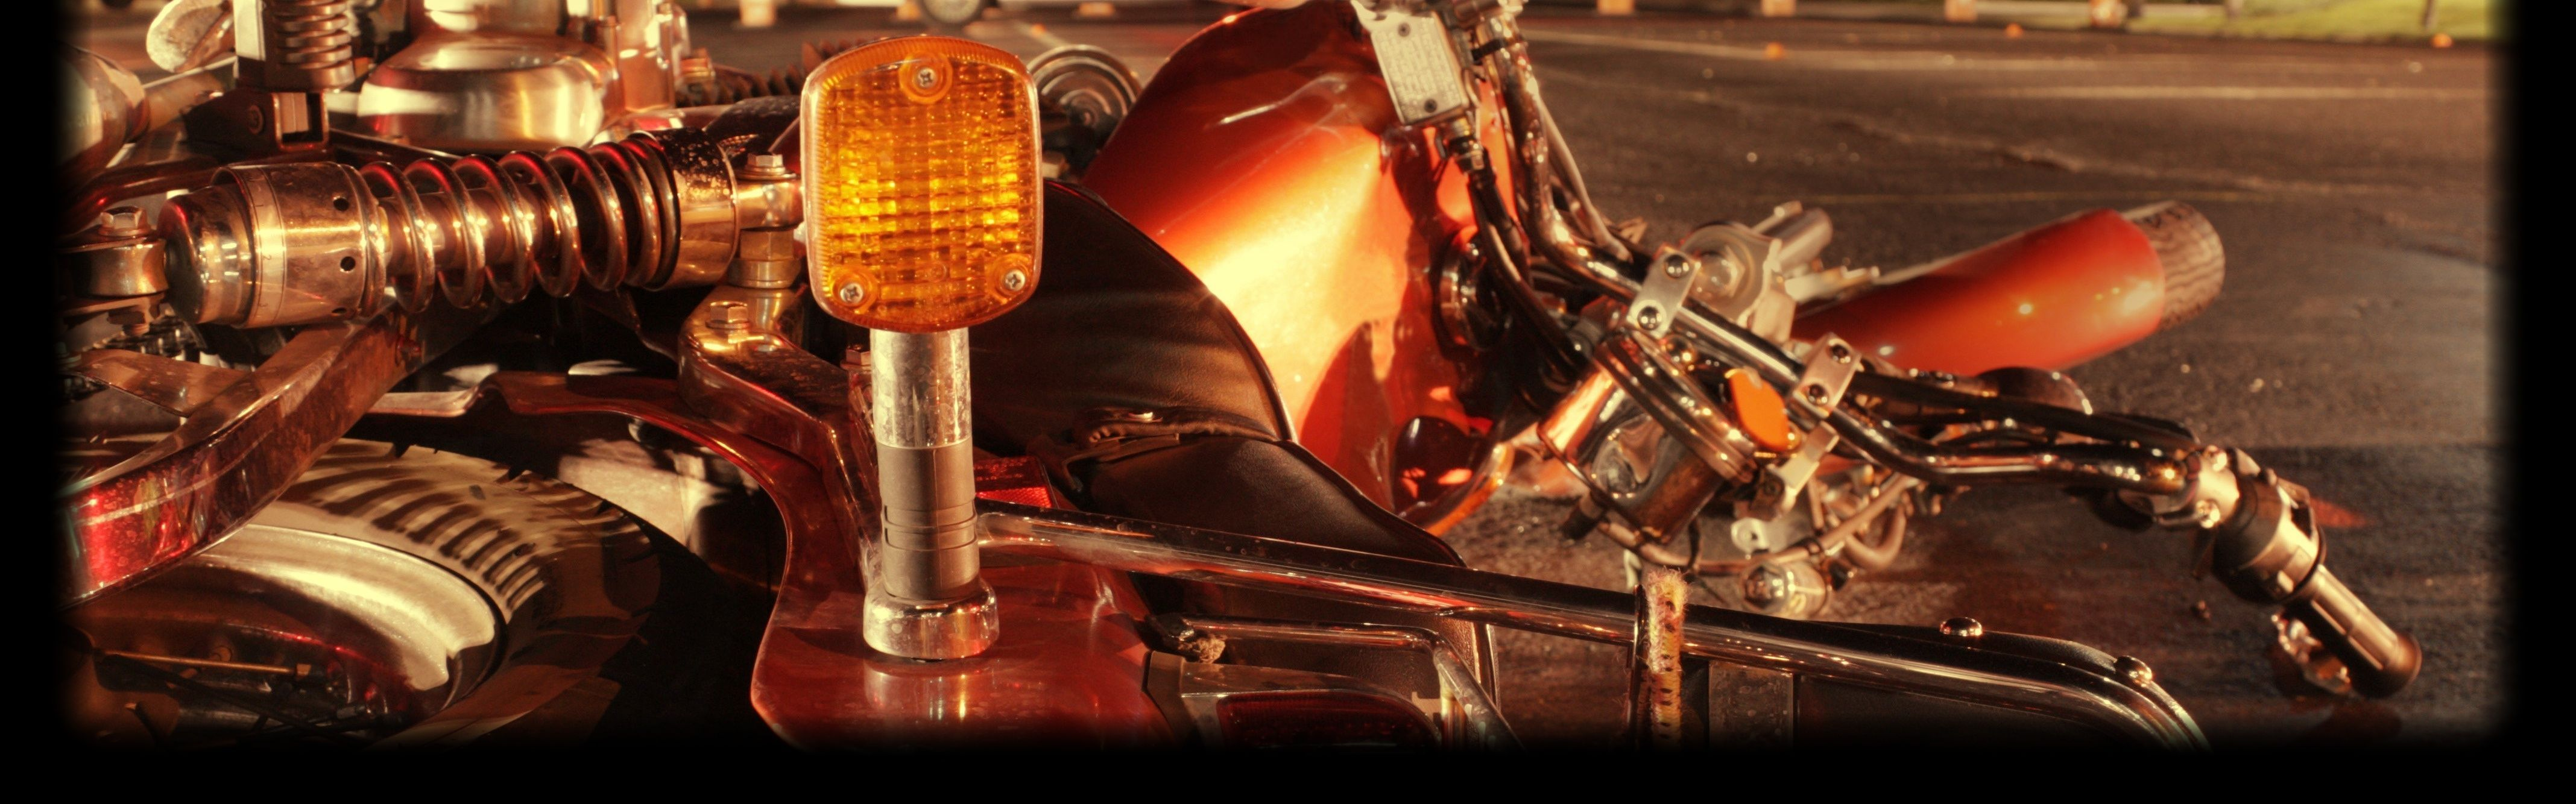 Treatment for Motorcycle Accident Injuries